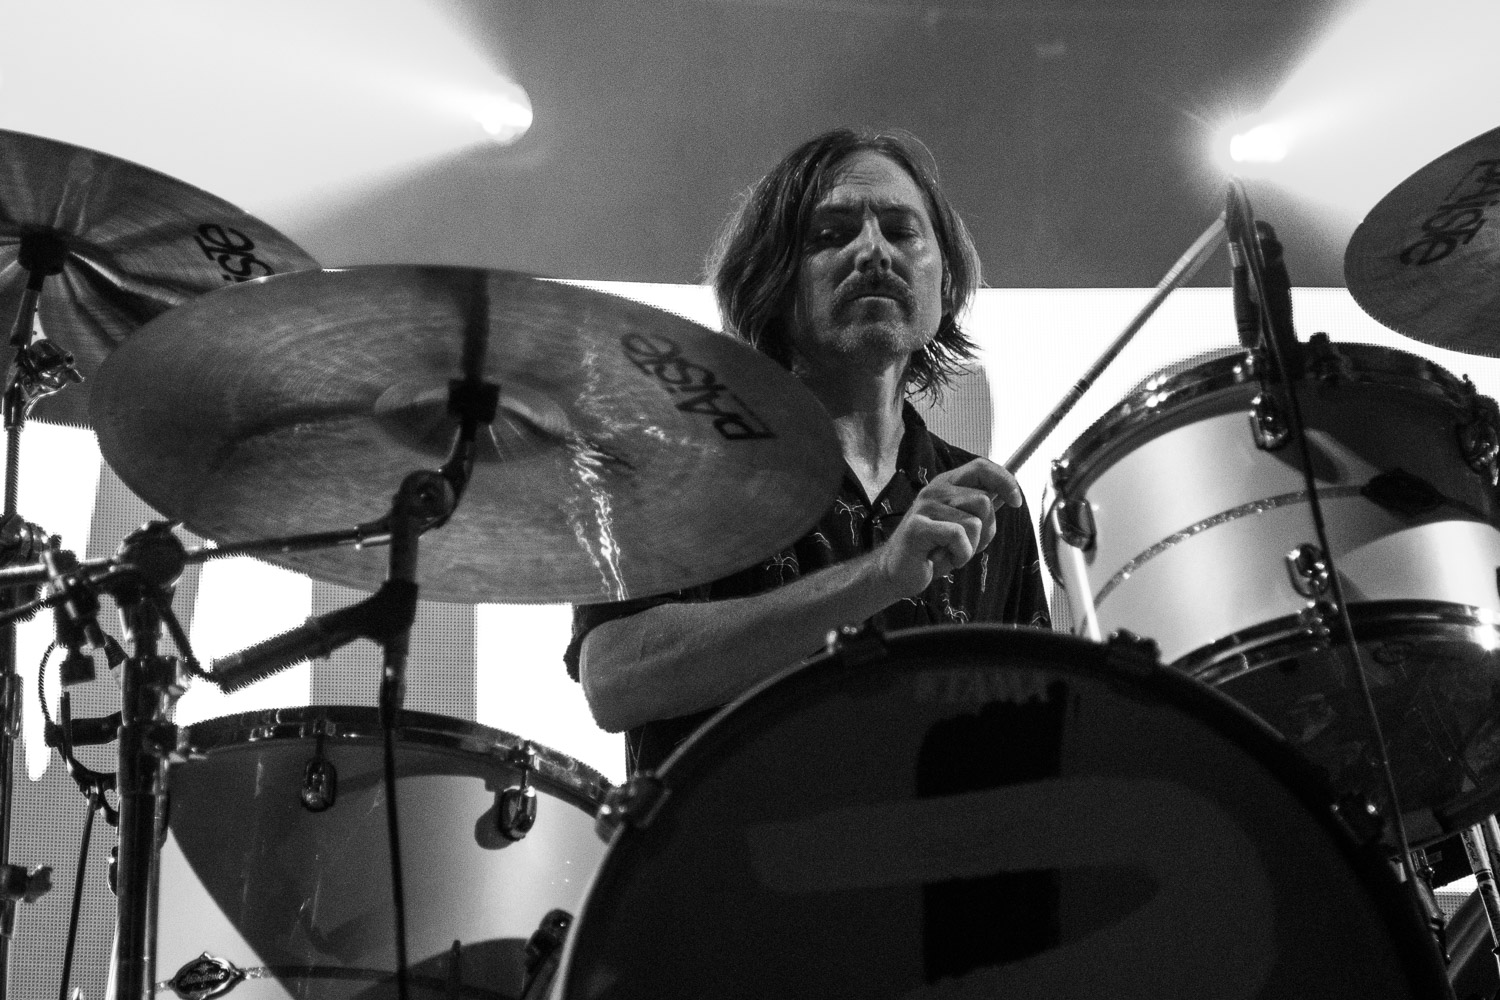 Chad Butler, drummer of Switchfoot